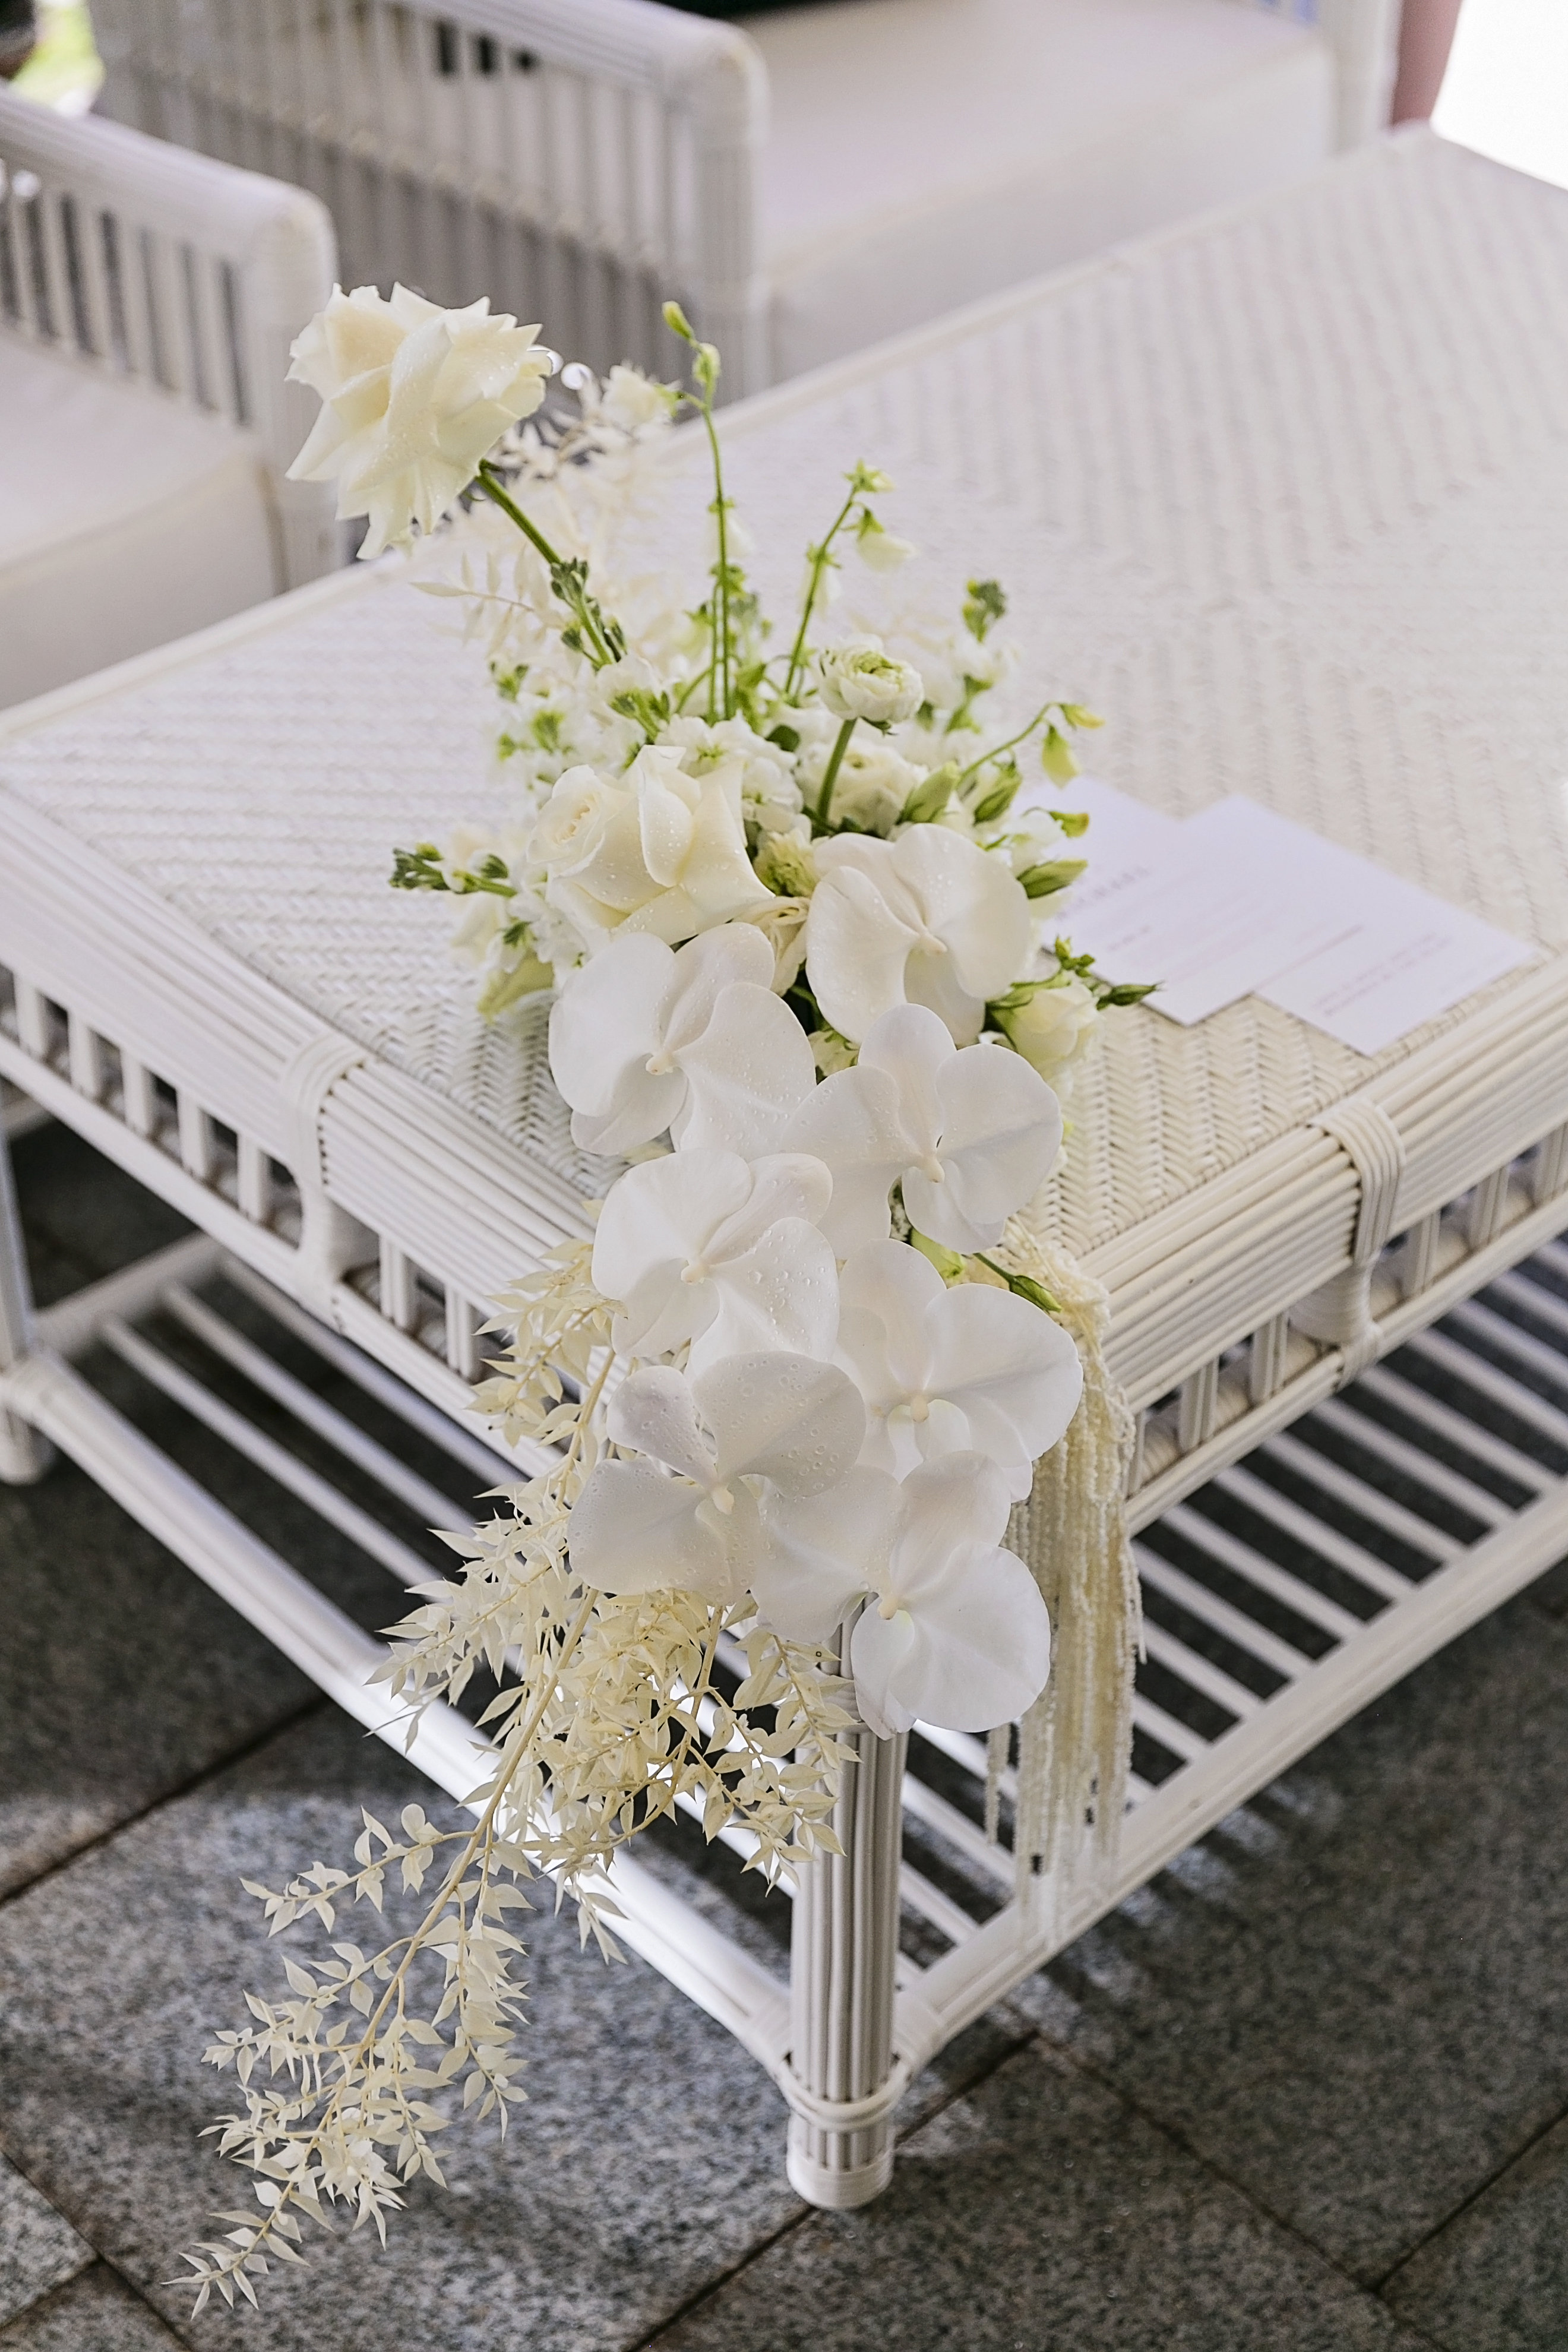 Costal style blooms in whites and ivories